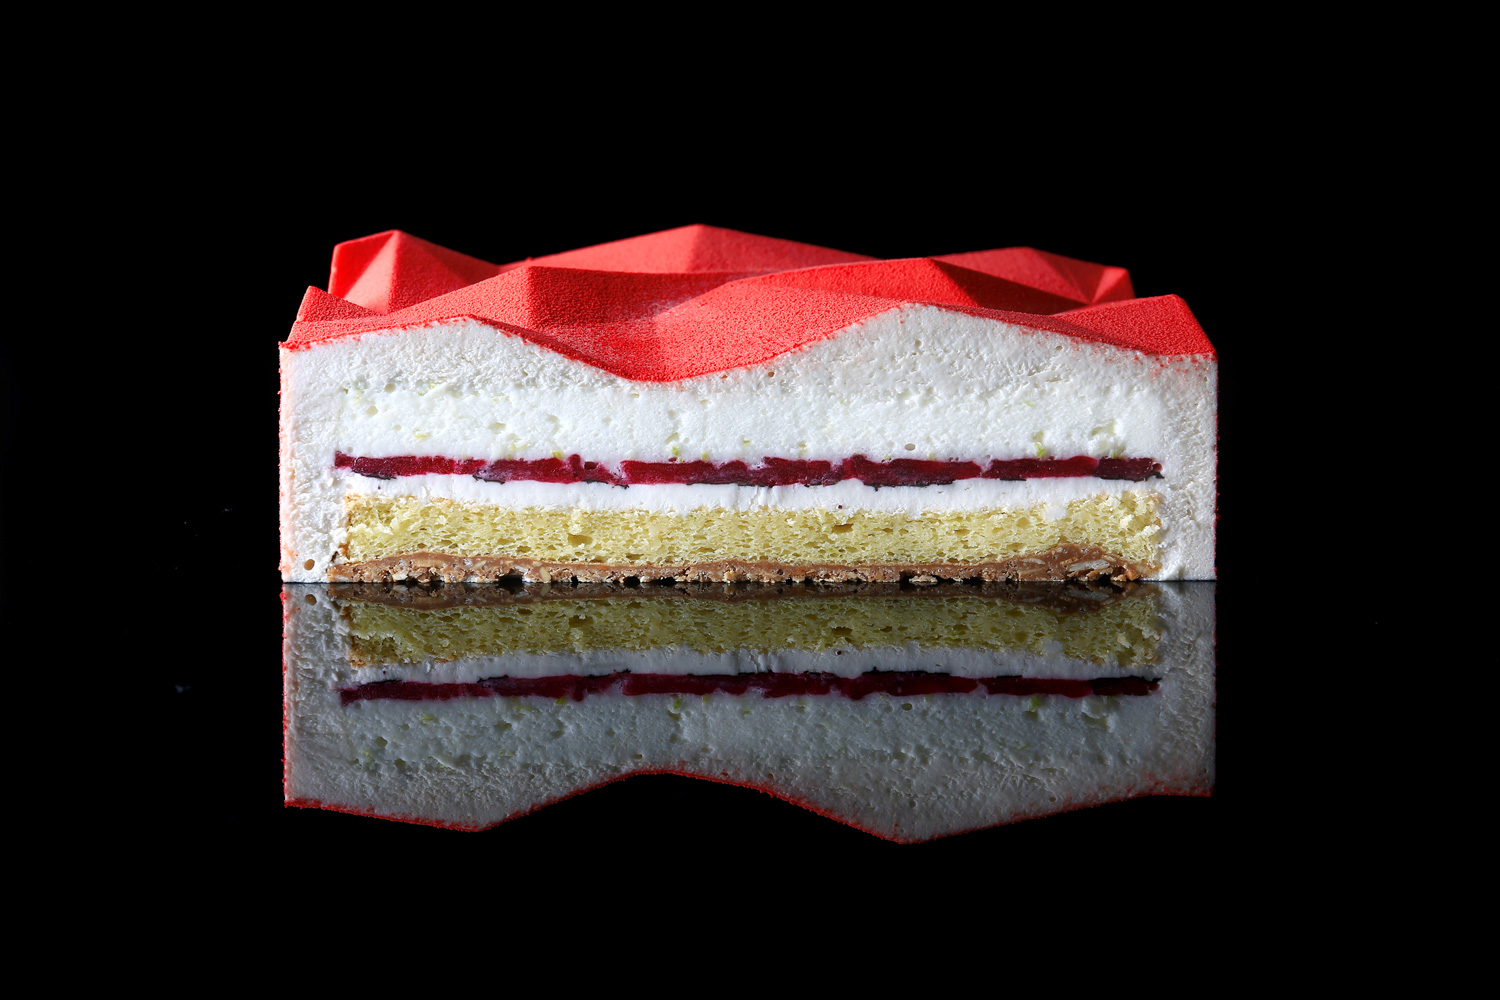 Architectural Cakes by Dinara Kasko   Yellowtrace